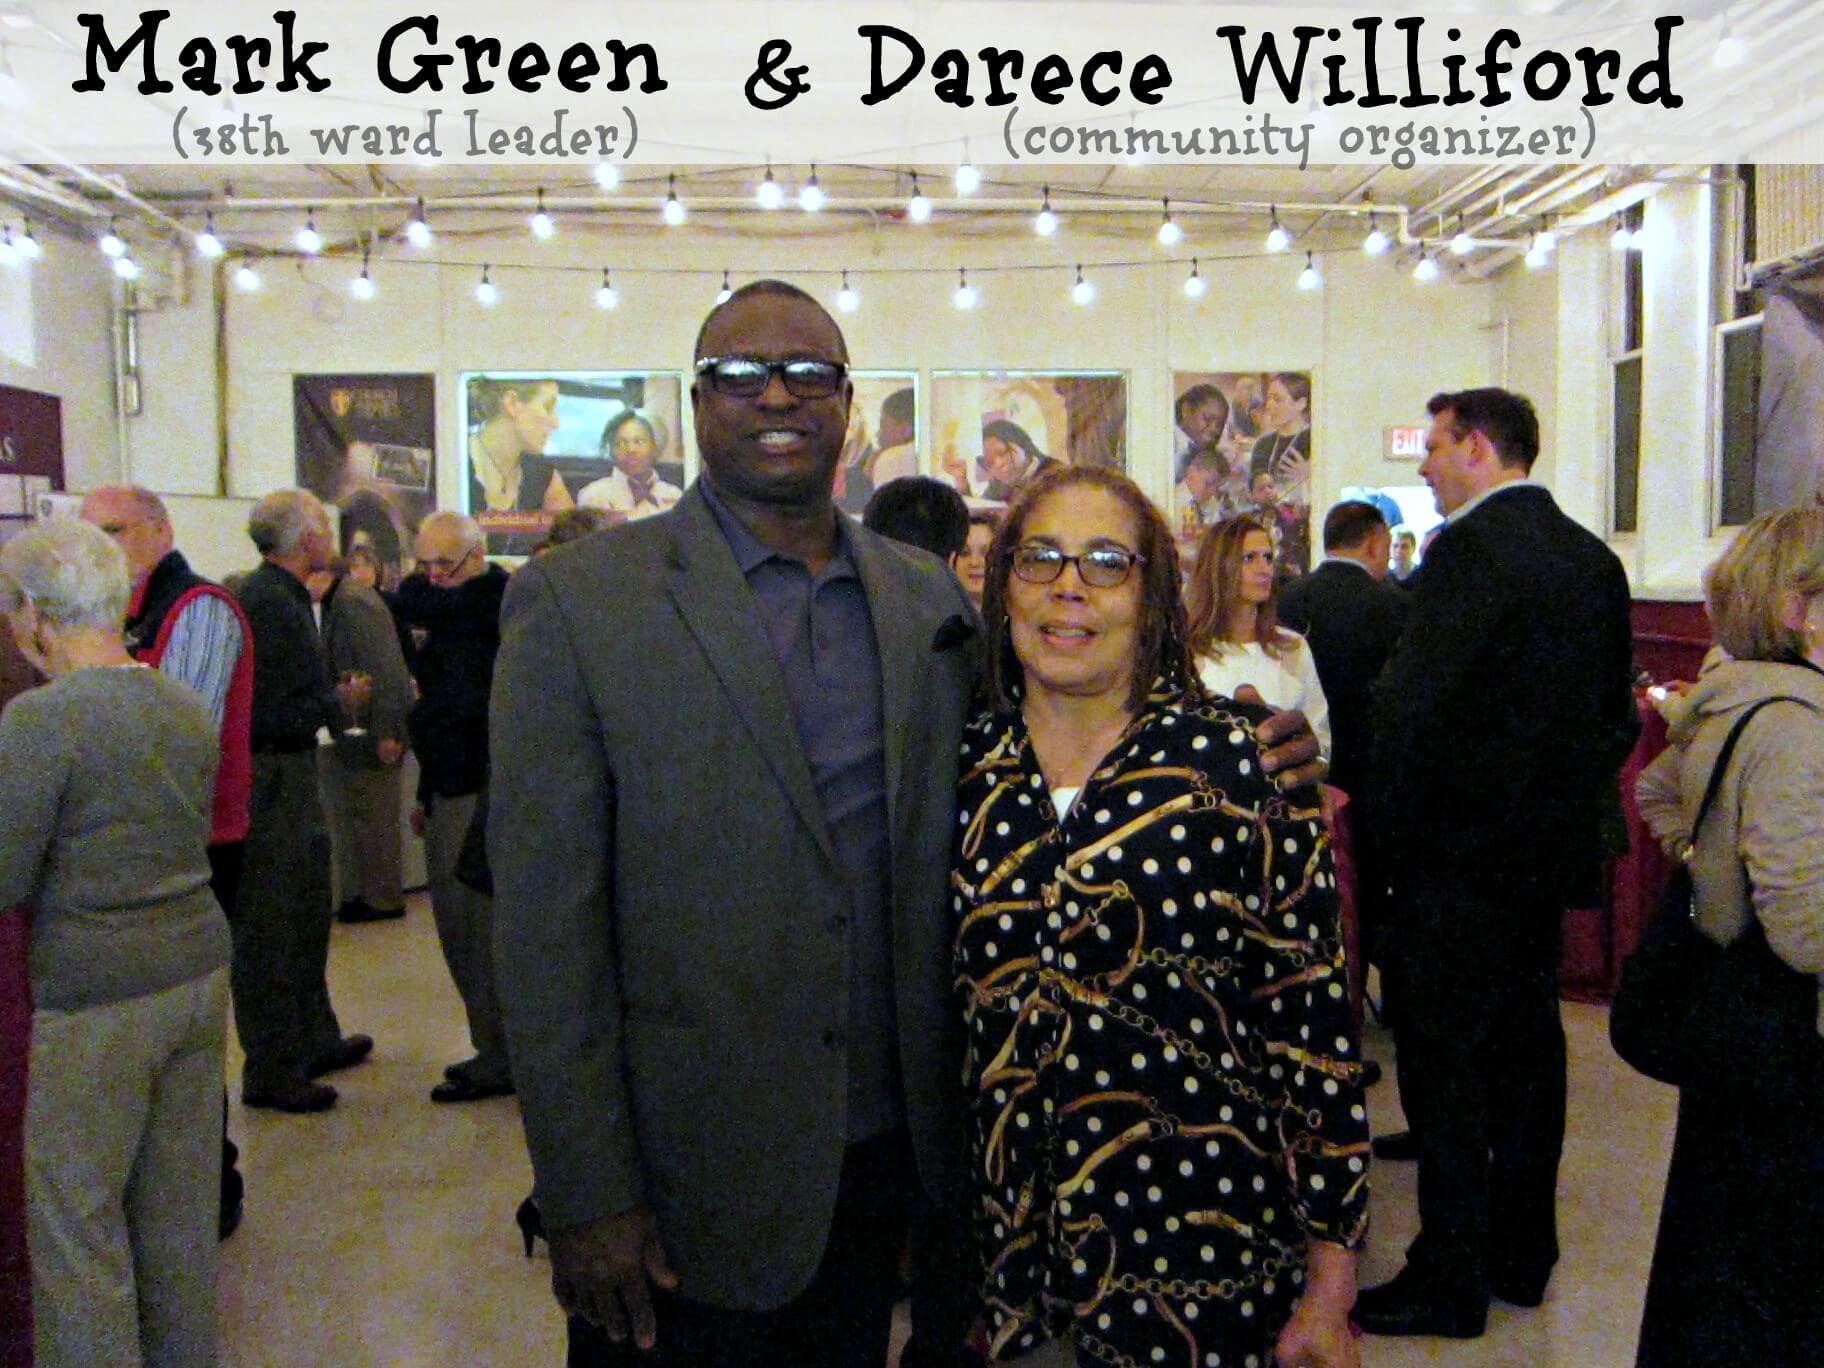 East Falls Local St James Neighborhood Kitchen 2-11 Mark Green with Darece Williford text